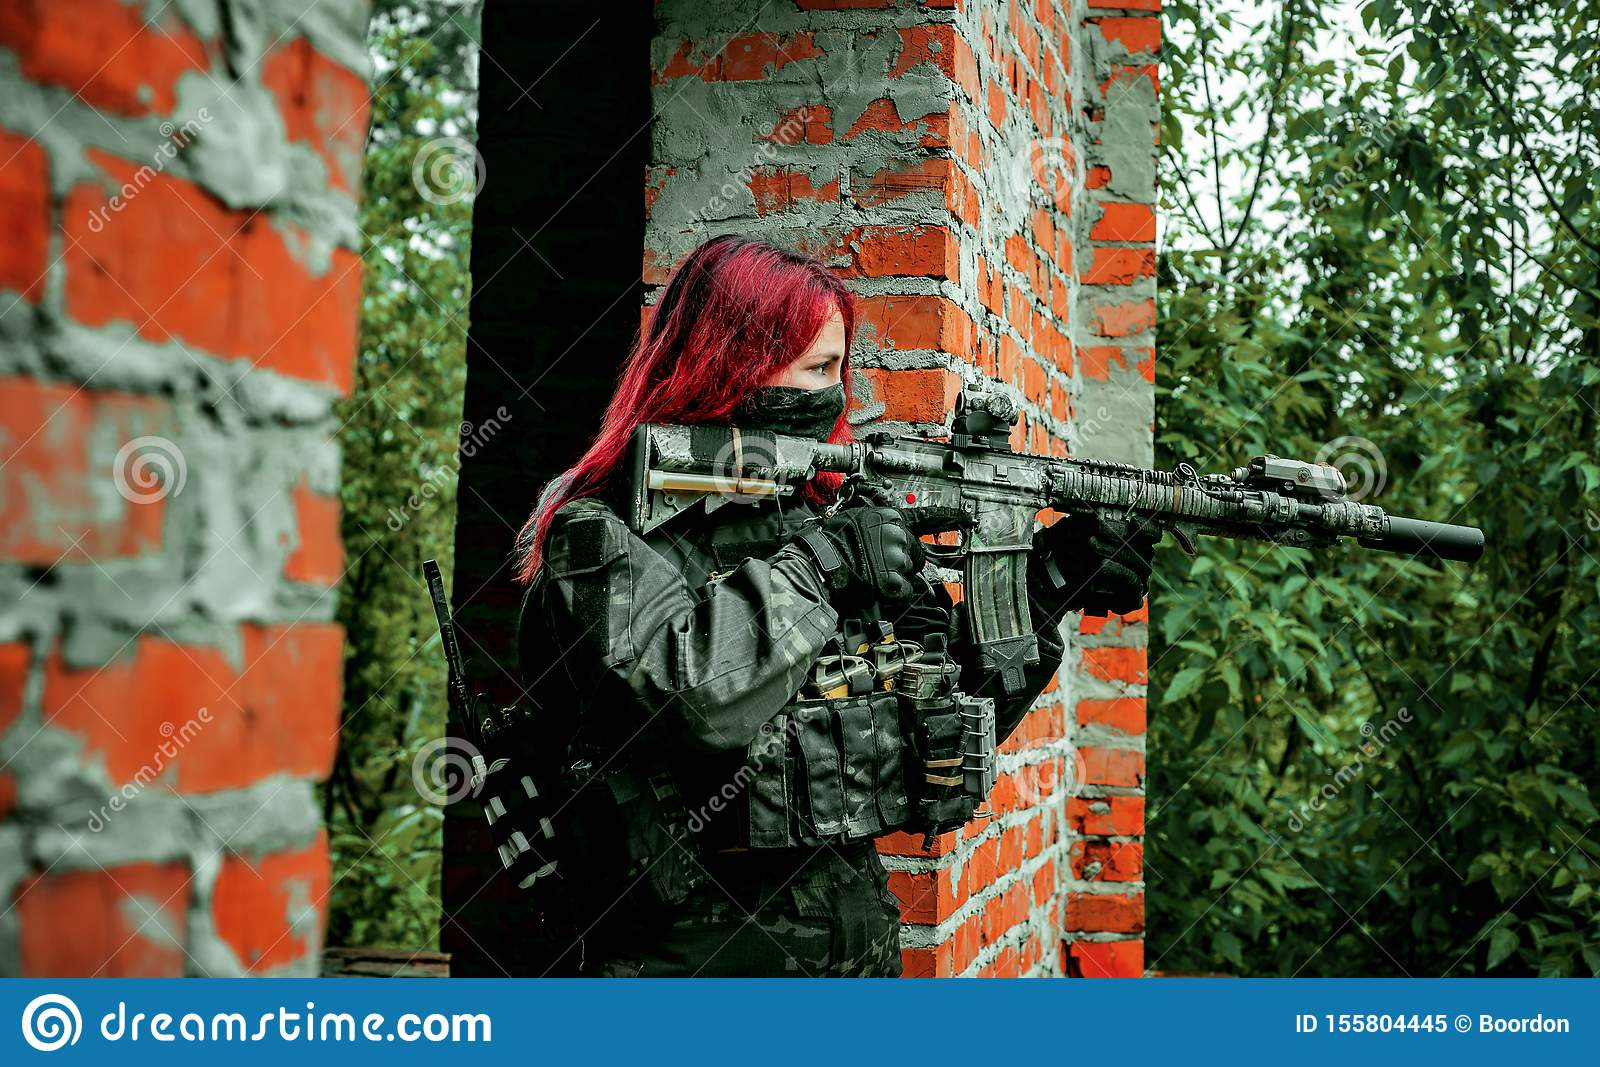 Airsoft red-hair woman in uniform with machine gun between brick walls. Soldier aims at the sight on the ruins. Horizontal photo